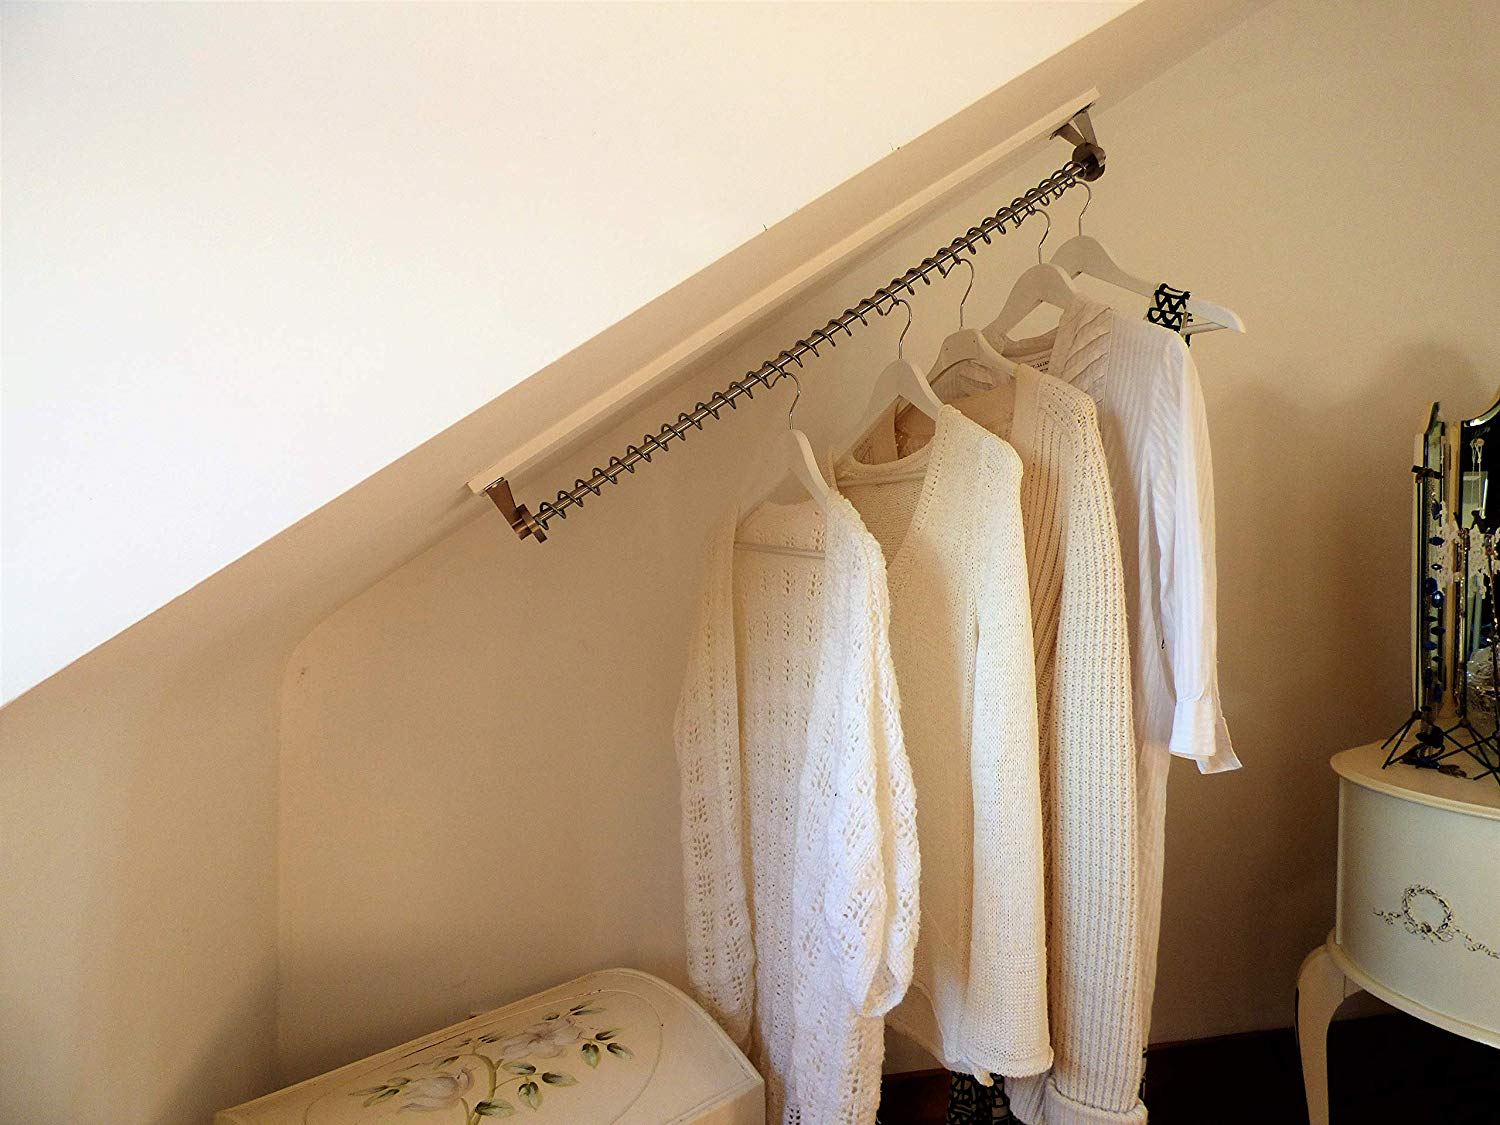 Waterfall Clothes Hanging Rail Rack. Storage For Sloping Angled Ceilings (900 mm)